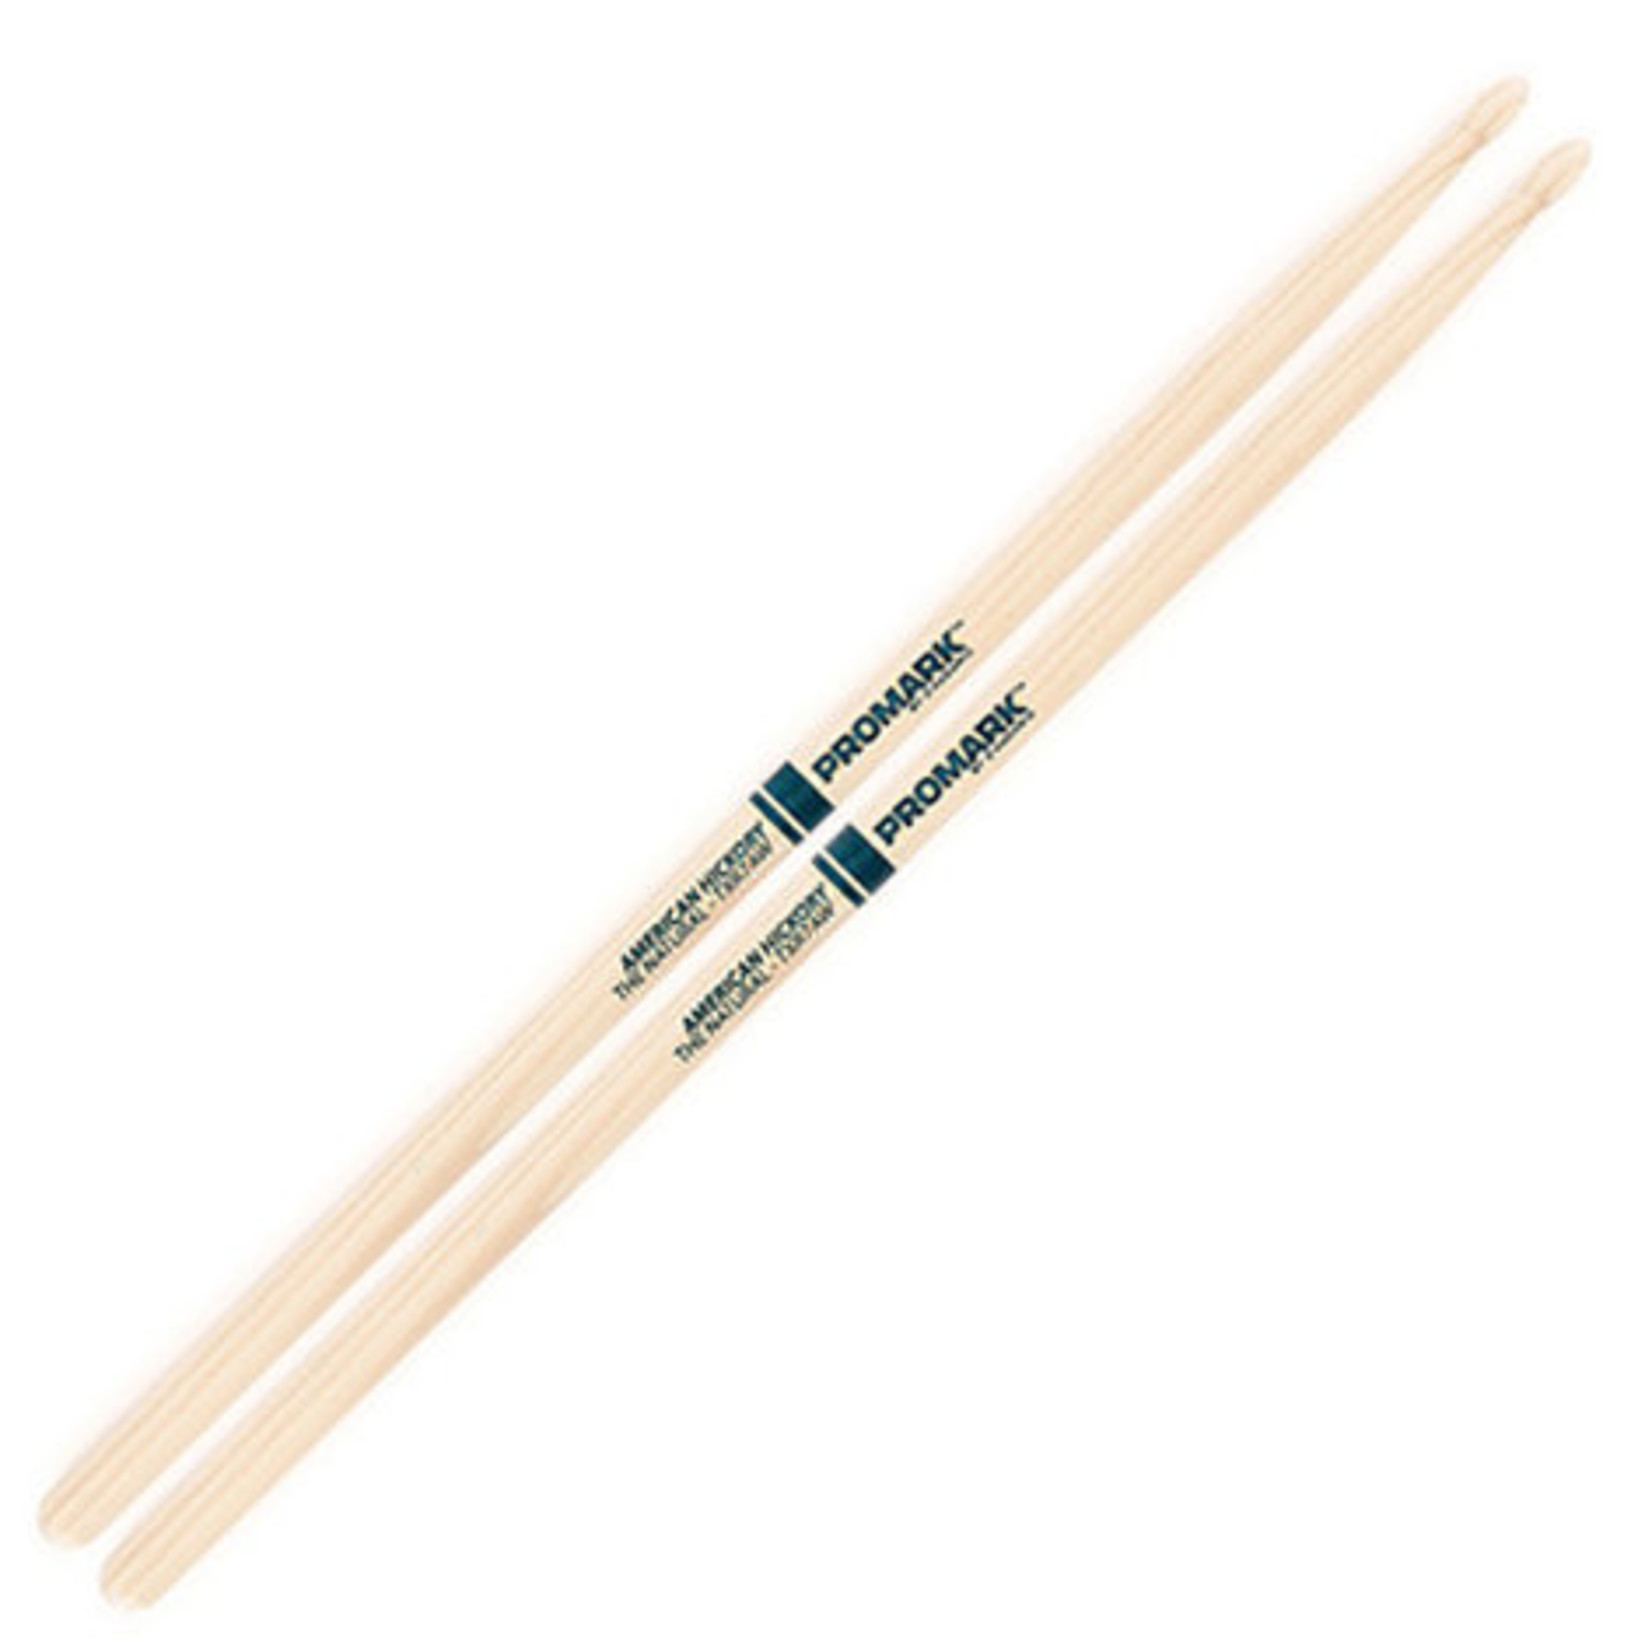 Promark ProMark Classic Forward 7A Raw Hickory, Oval Wood Tip Drumstick